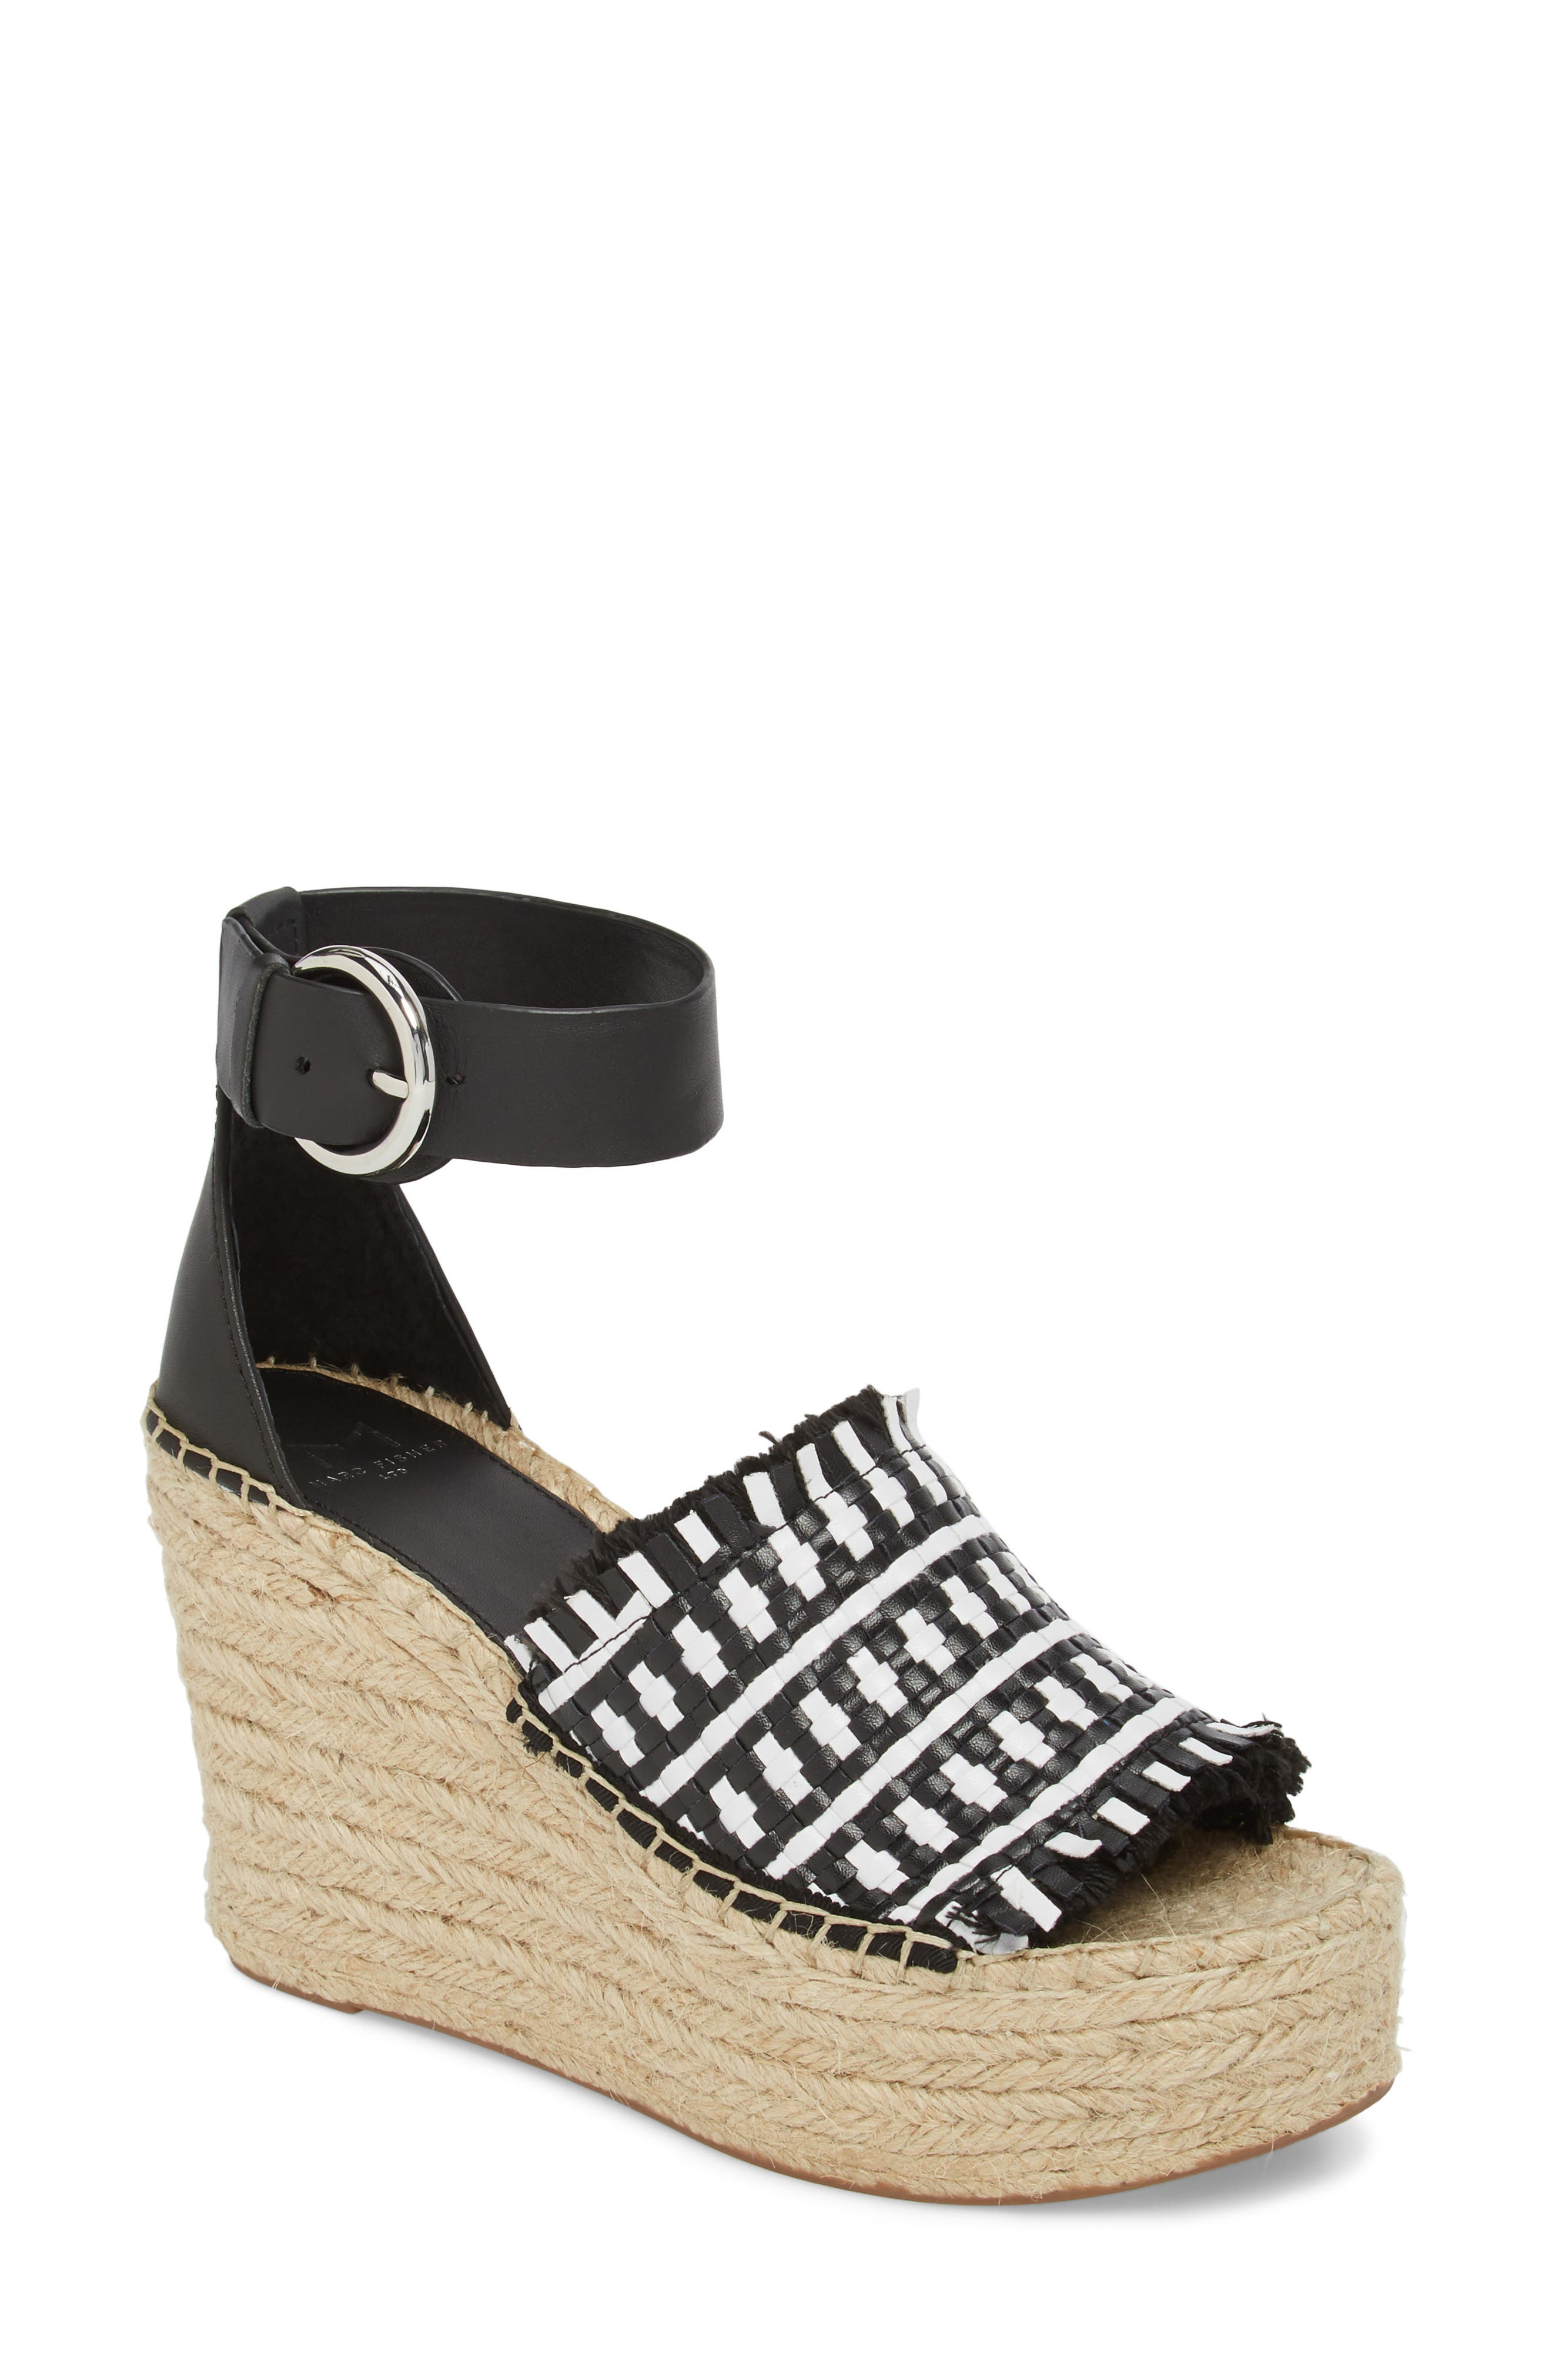 Andrew Espadrille Wedge Sandal,                             Main thumbnail 1, color,                             White/ Black Leather